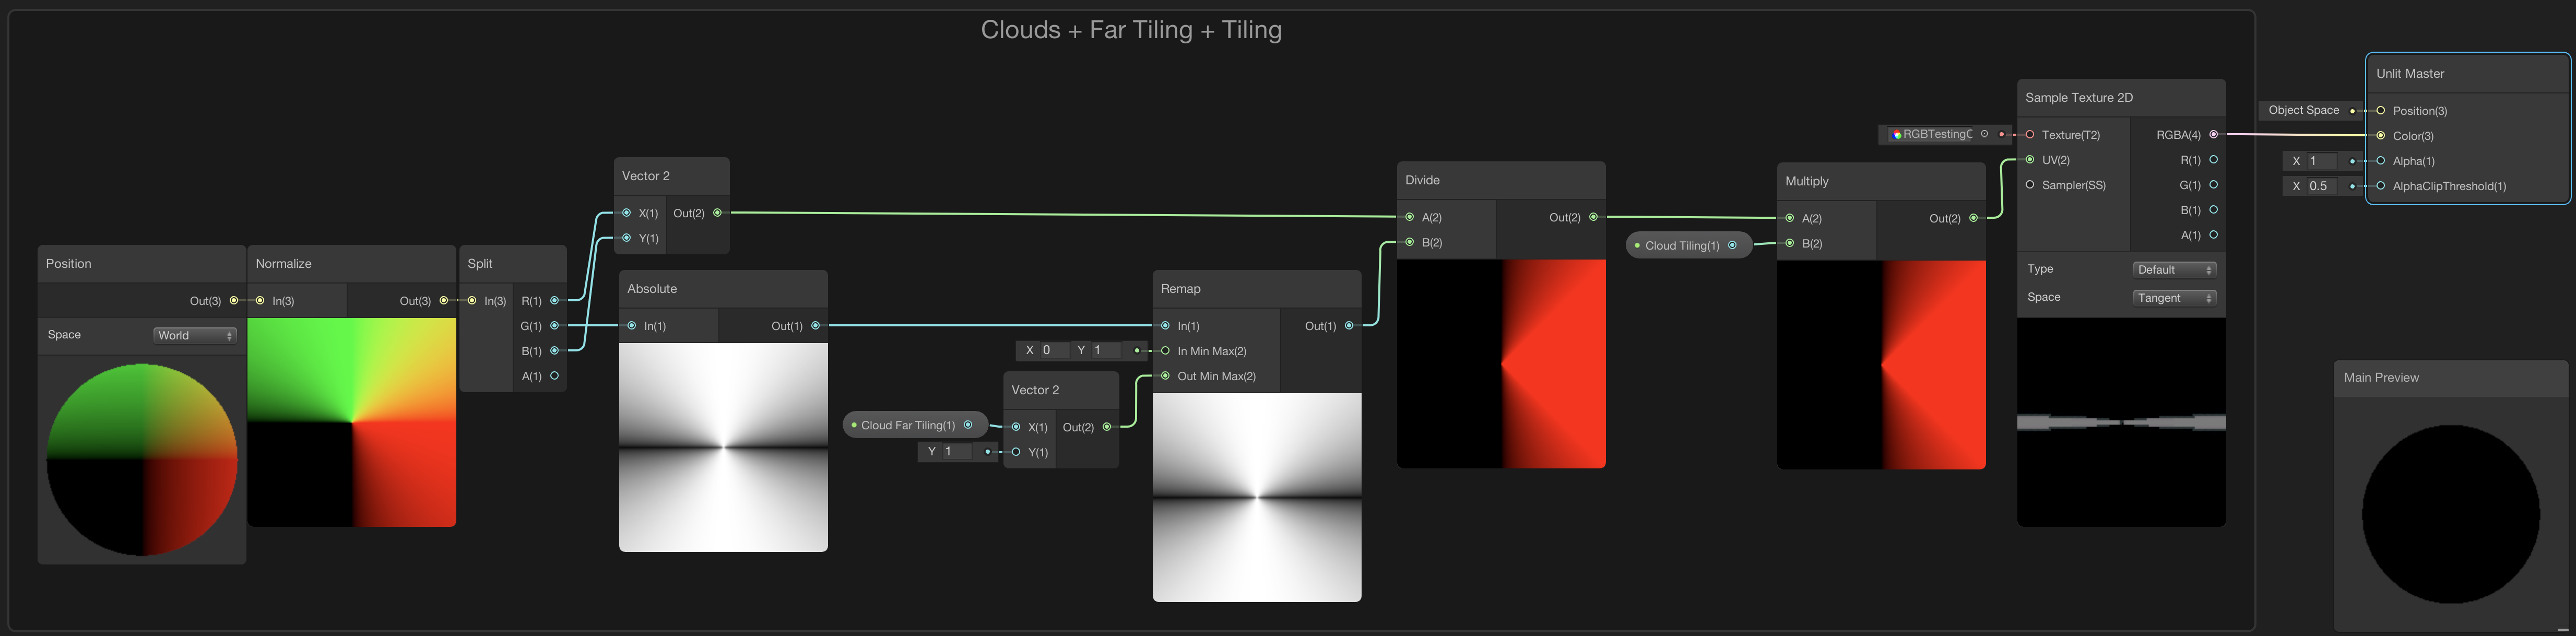 Image displaying the shader graph node setup to add texture tiling to the clouds layer.